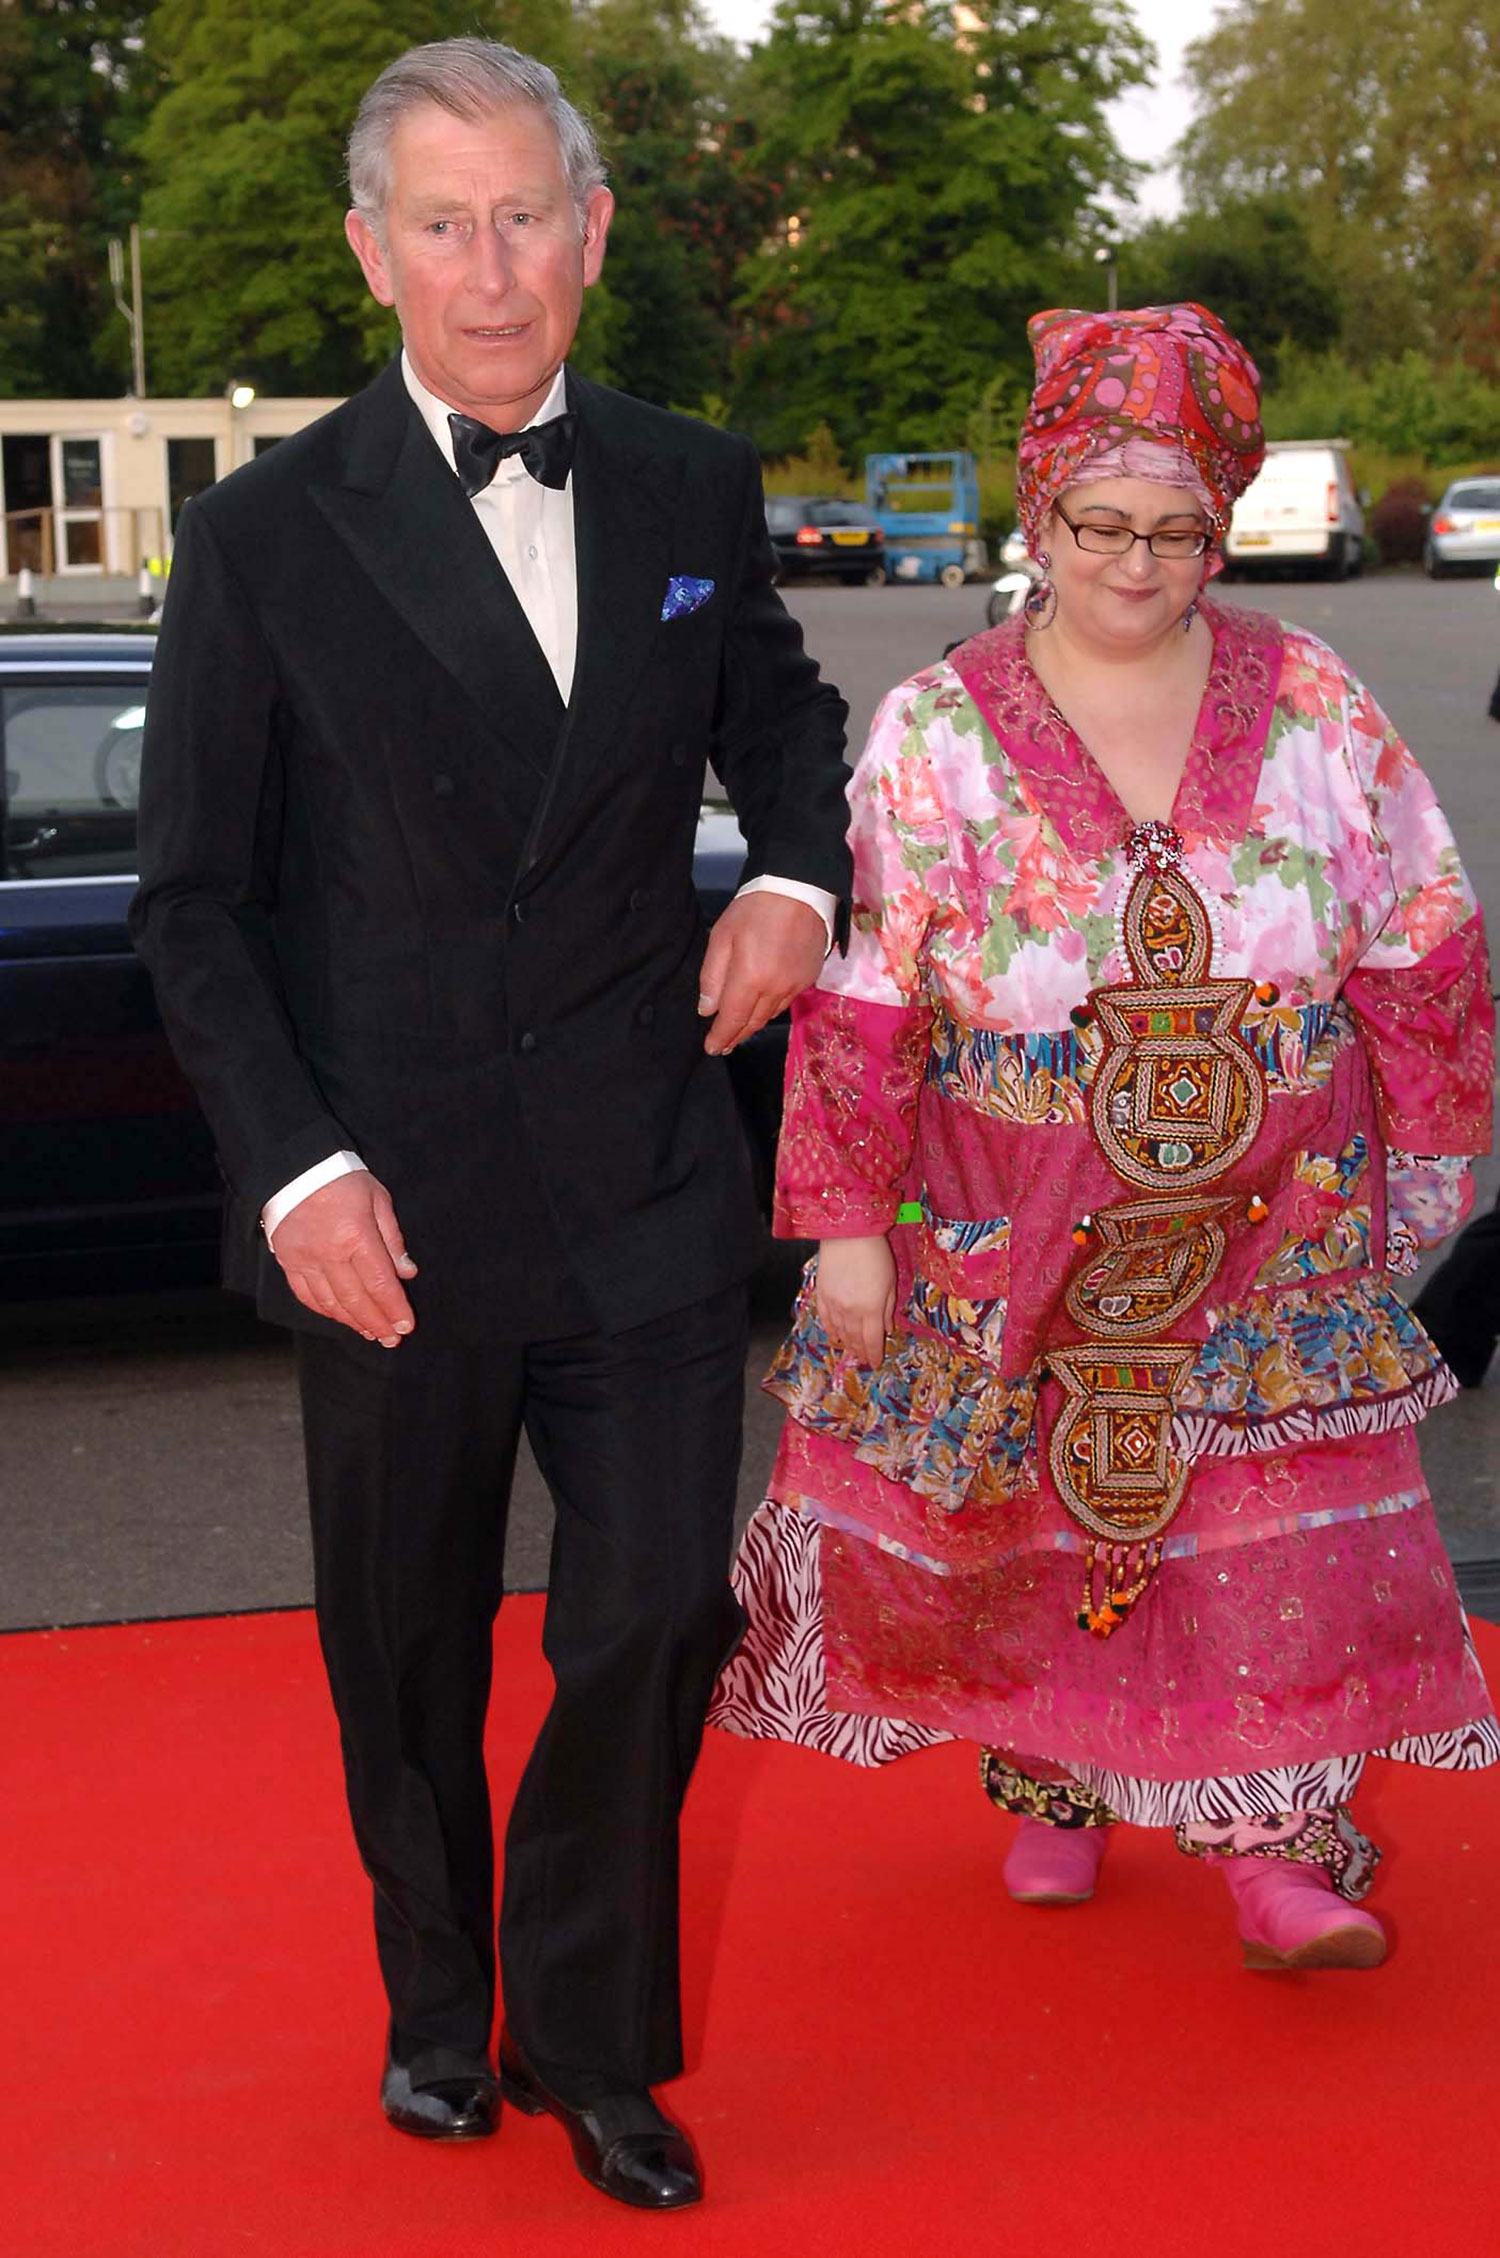 Prince Charles, Prince of Wales is greeted by founder Camila Batmanghelidjh as he arrives at a Kids Company dinner on May 14, 2008 in London, England